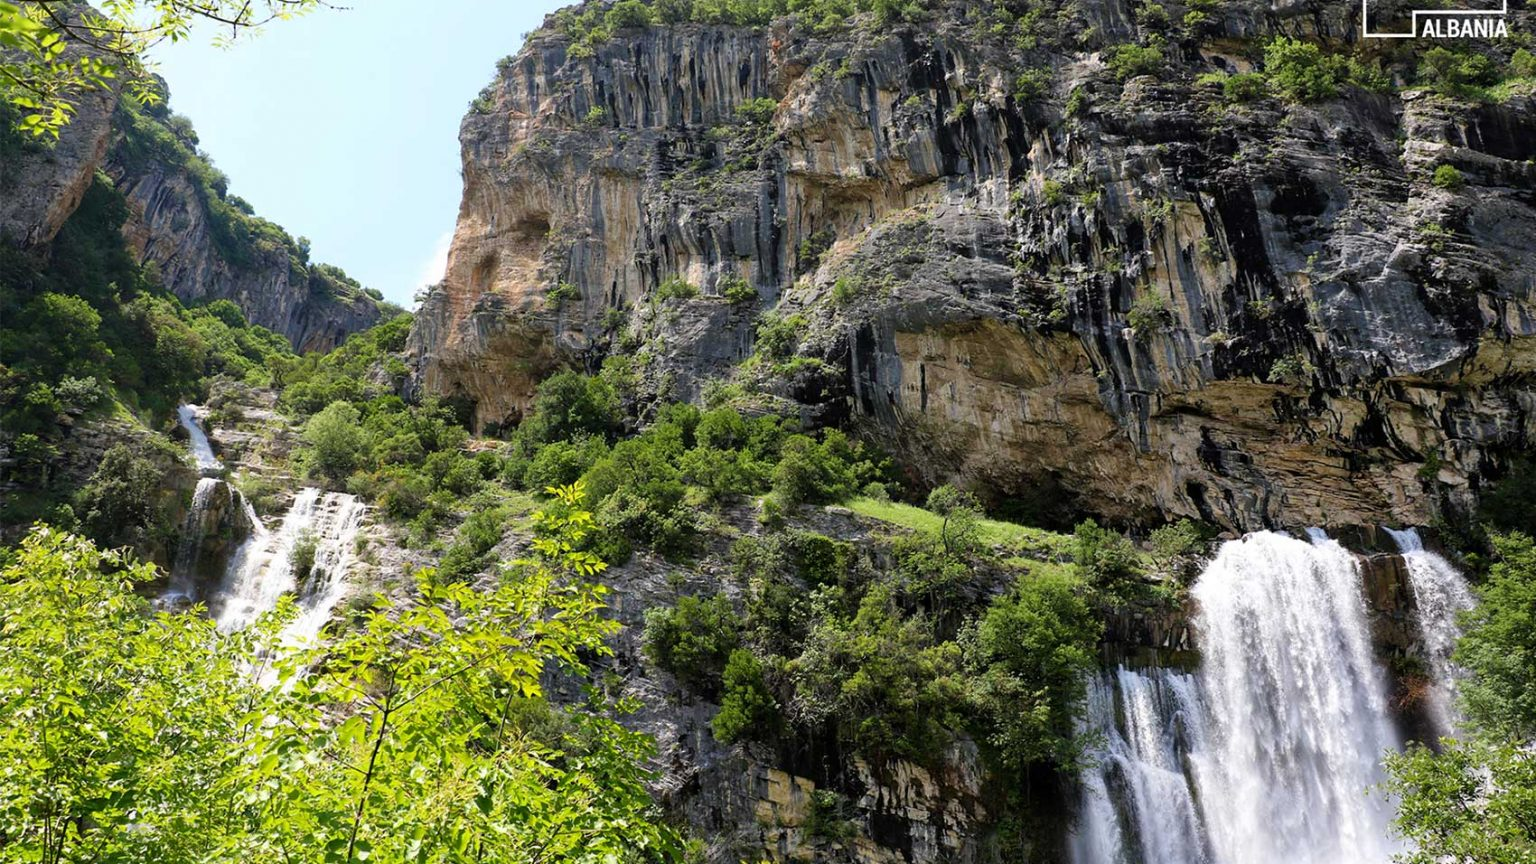 Sotira Waterfall in Gramsh, Elbasan, photo by IntoAlbania